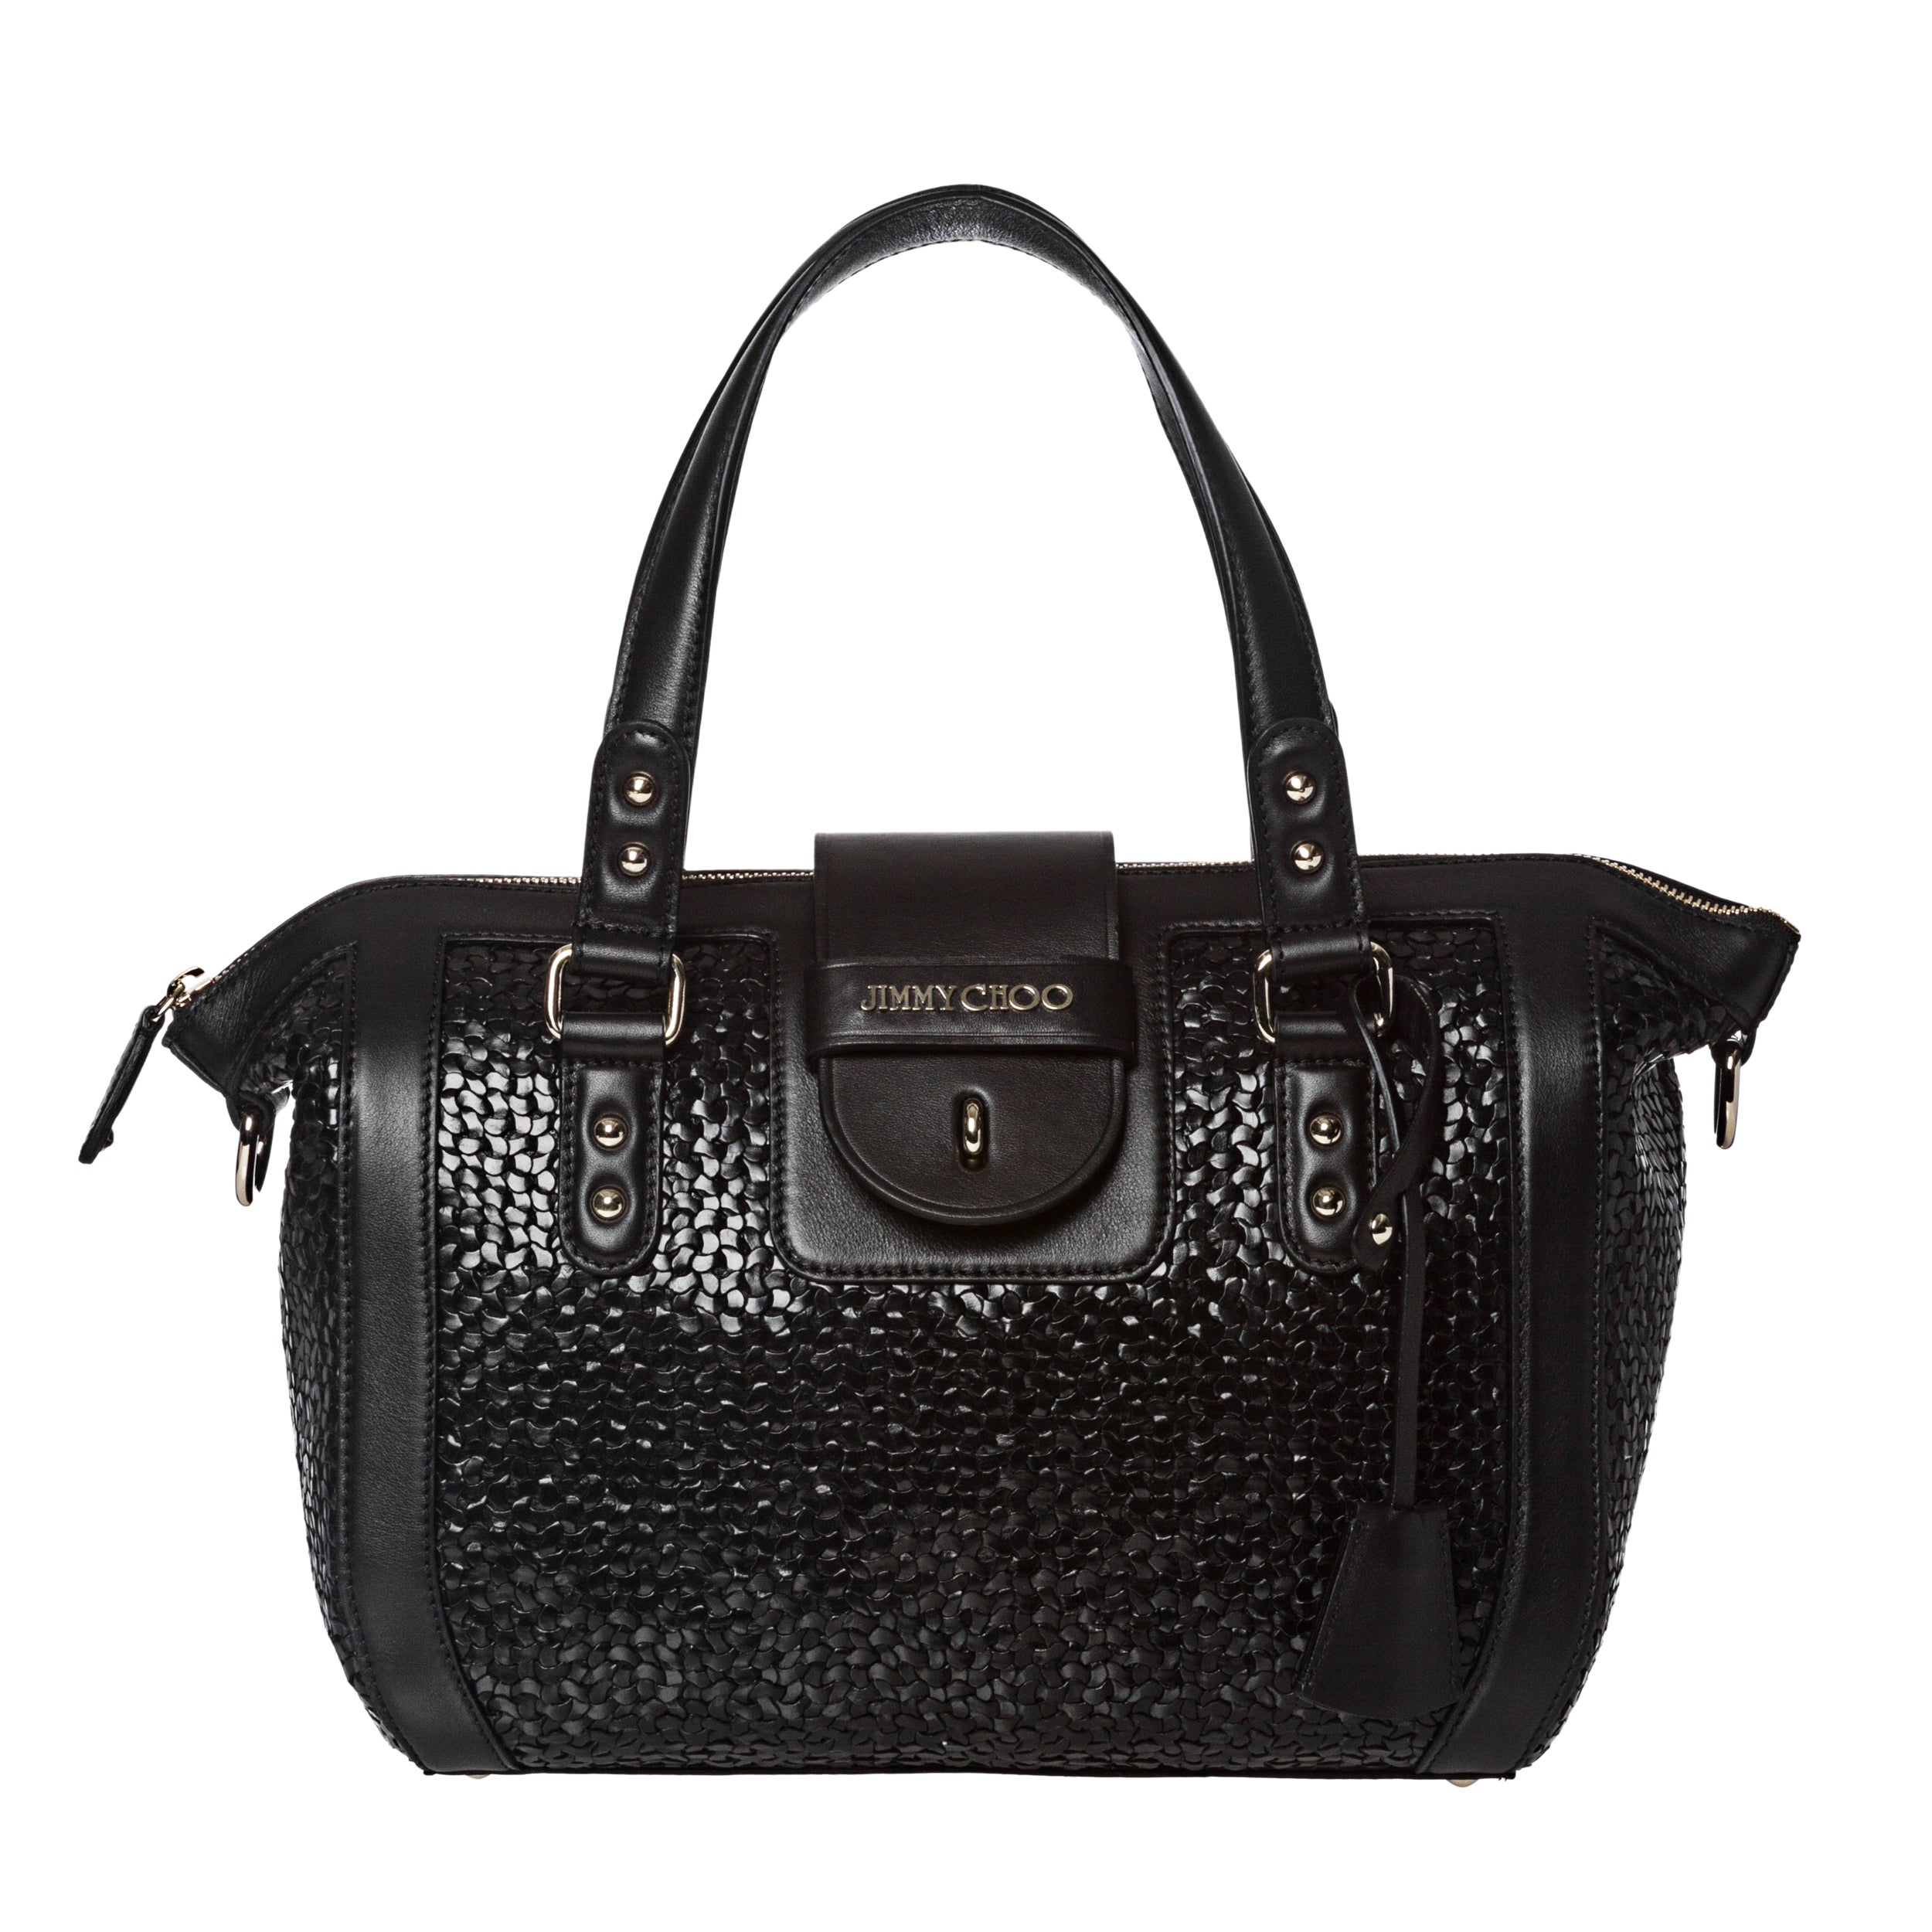 Jimmy Choo Small Black Woven Leather Tote Bag